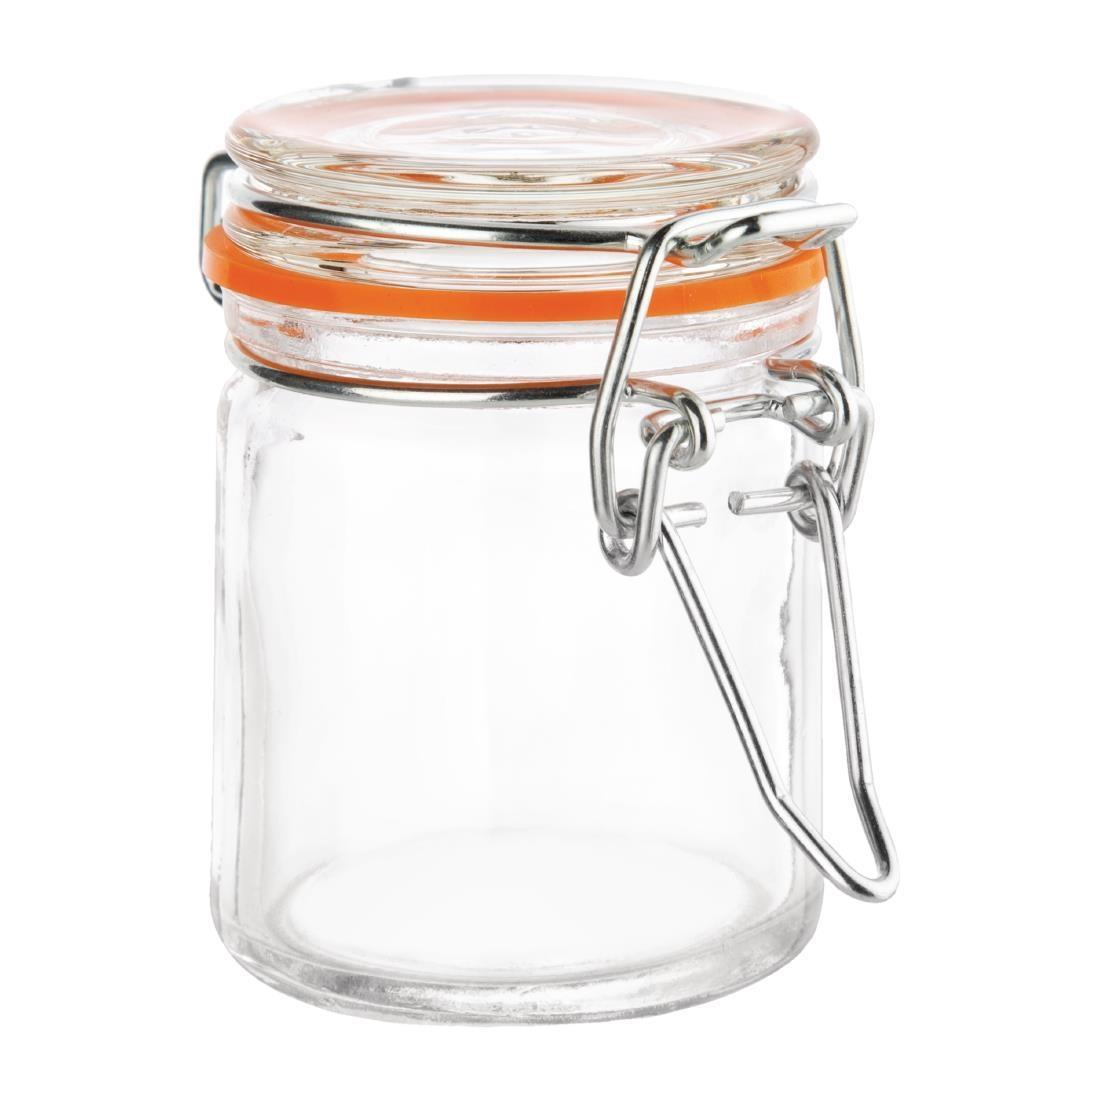 Vogue Mini Glass Terrine Jar 50ml - Case 12 - CG398